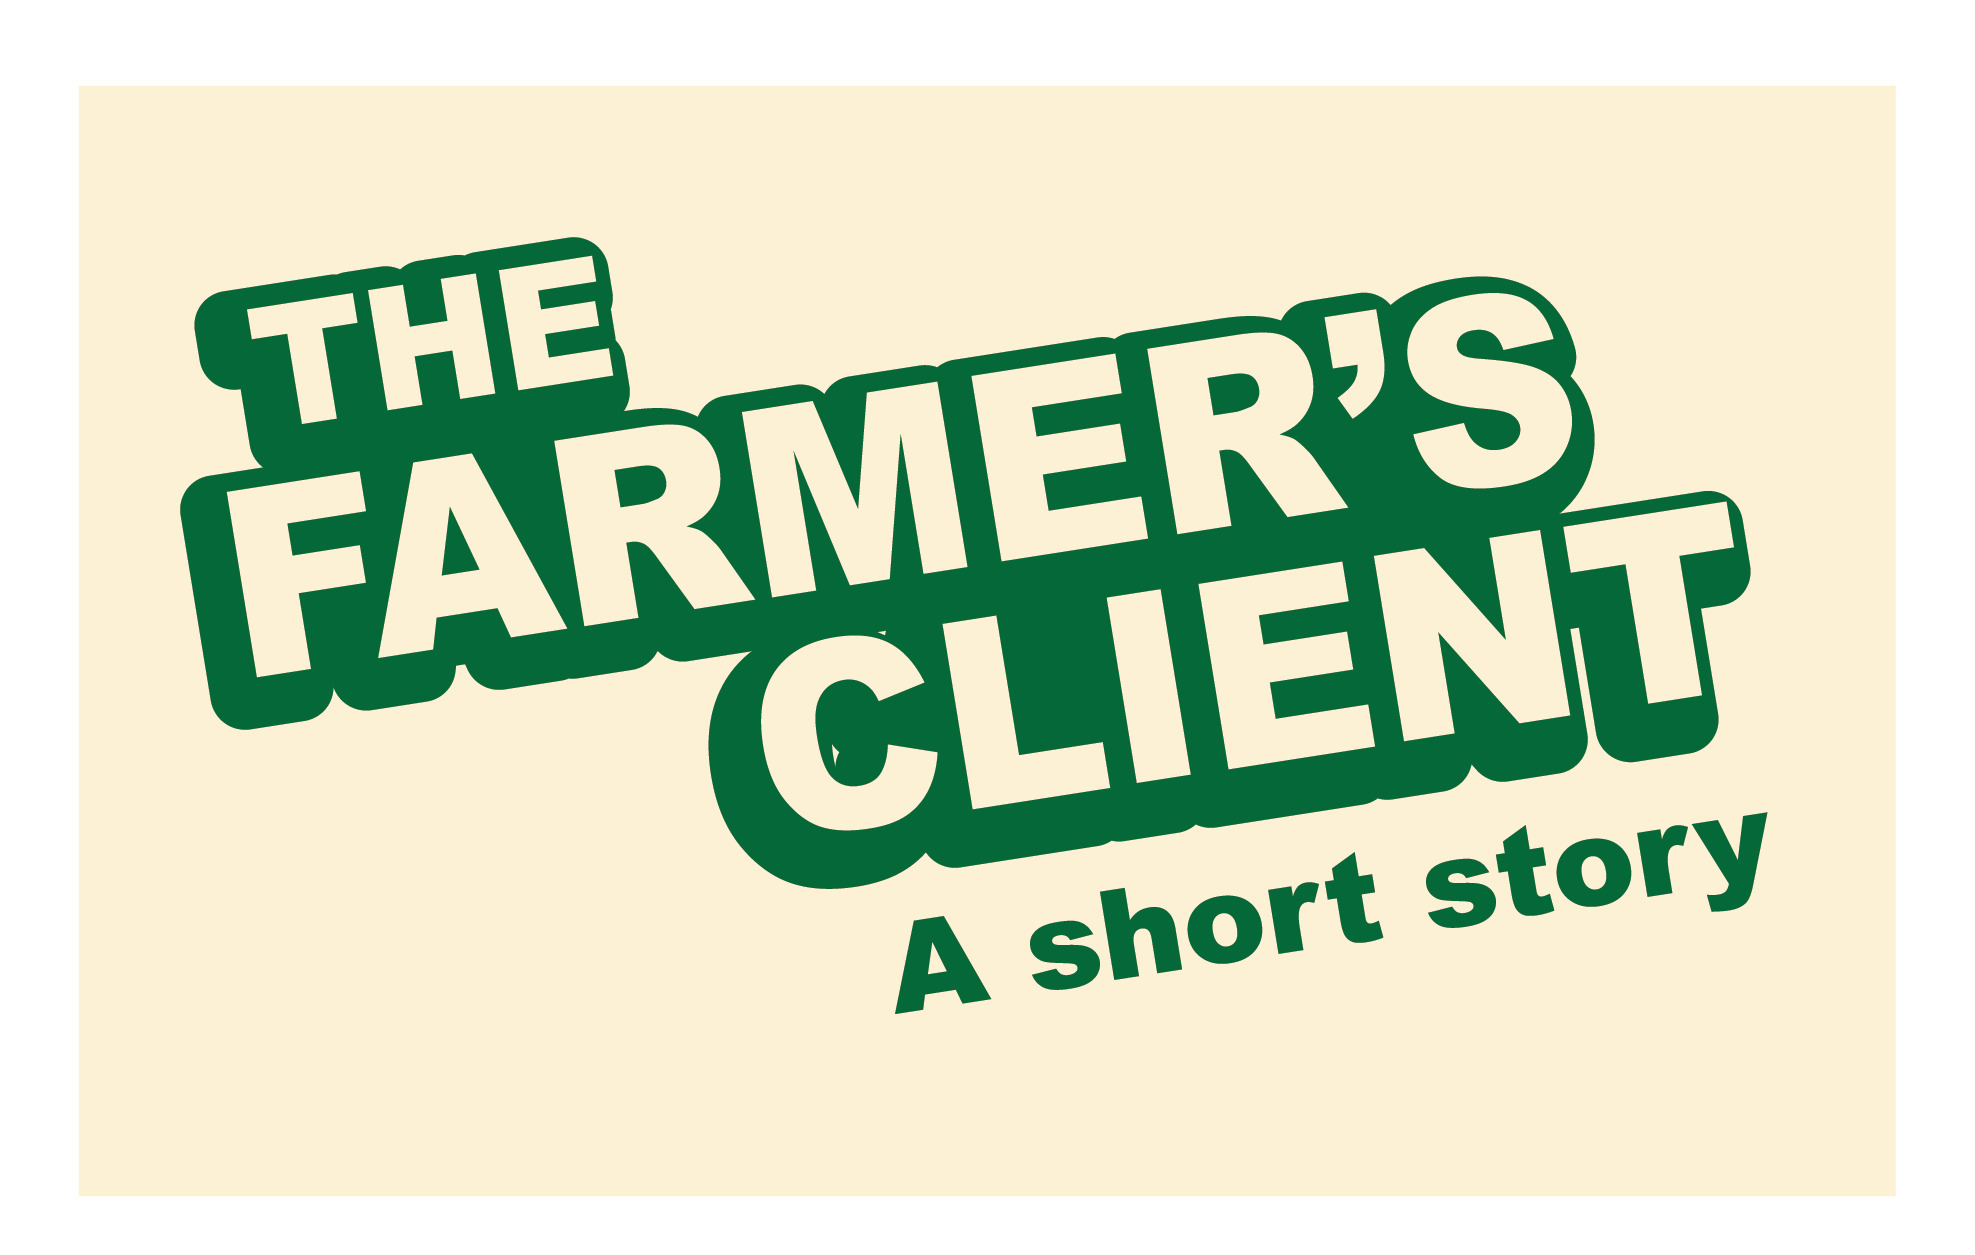 The Farmer's Client: A Short Story About Farmers If They Had Clients Like In Advertising